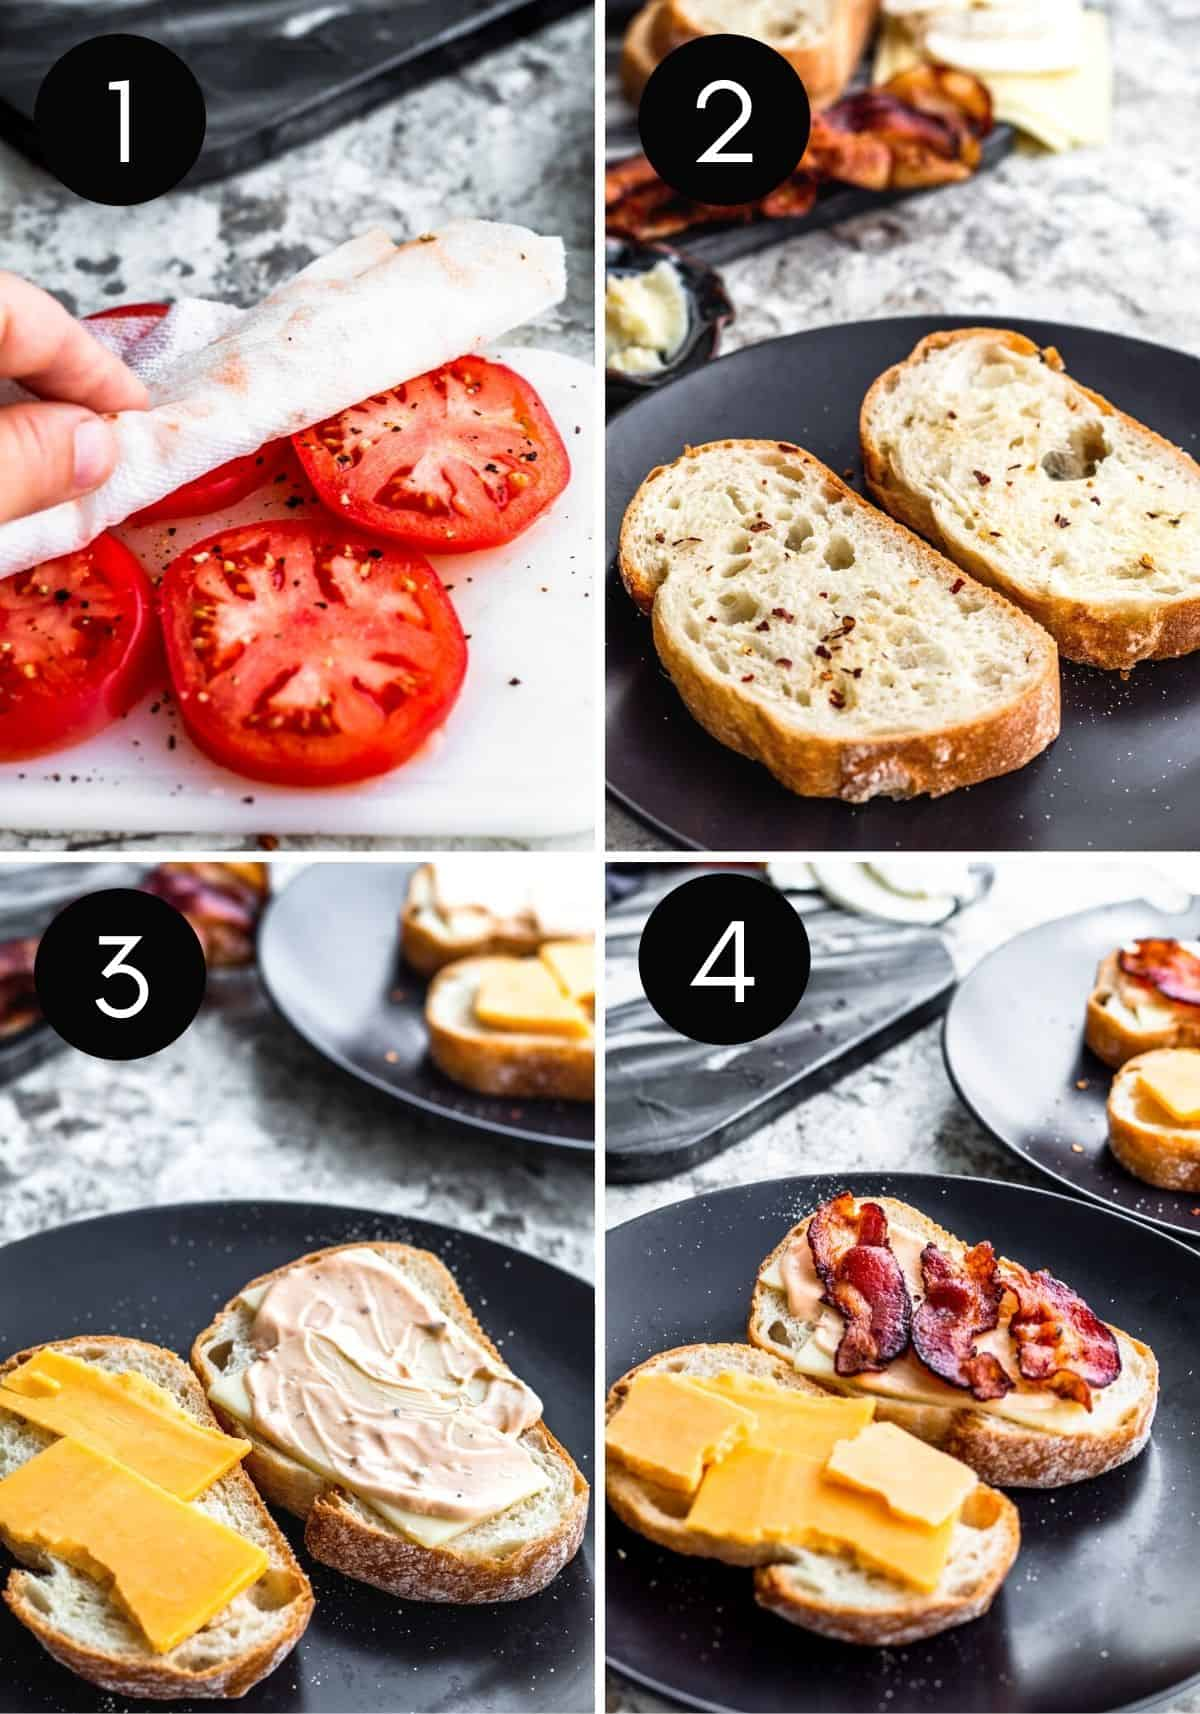 Four image prep collage of tomatoes being prepped and sandwich assembled.